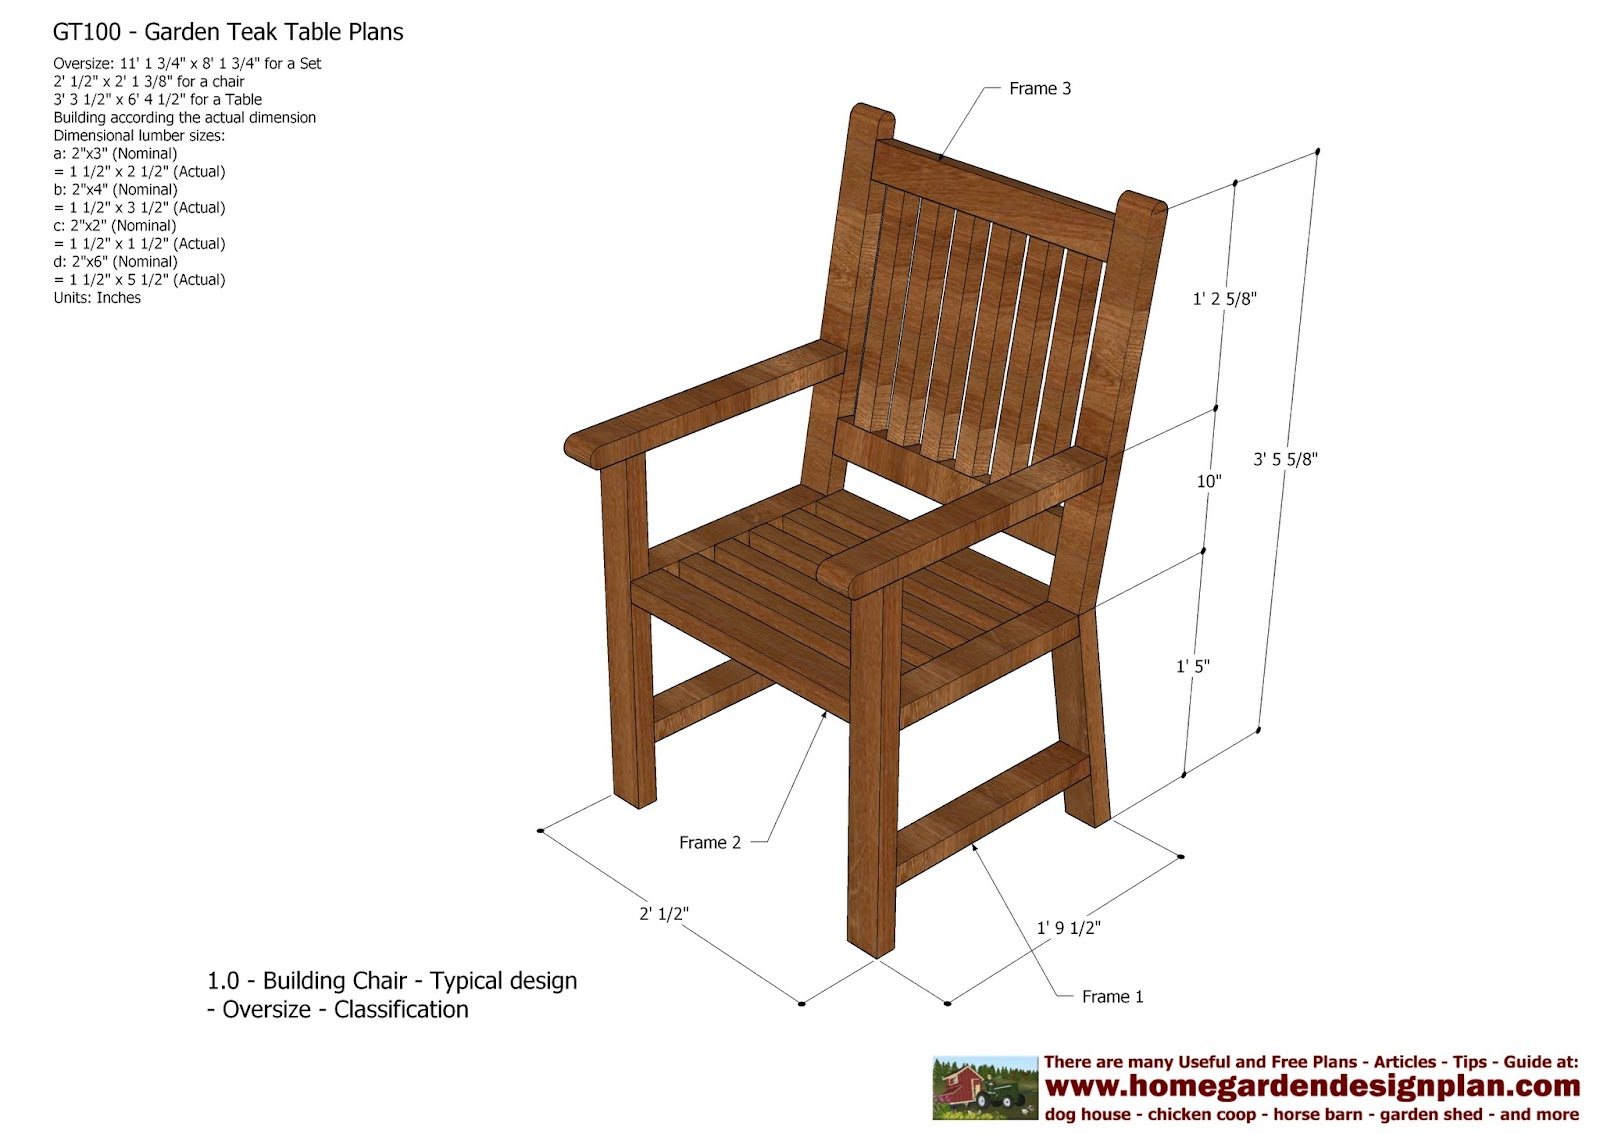 Home garden plans gt100 garden teak tables for Patio furniture designs plans